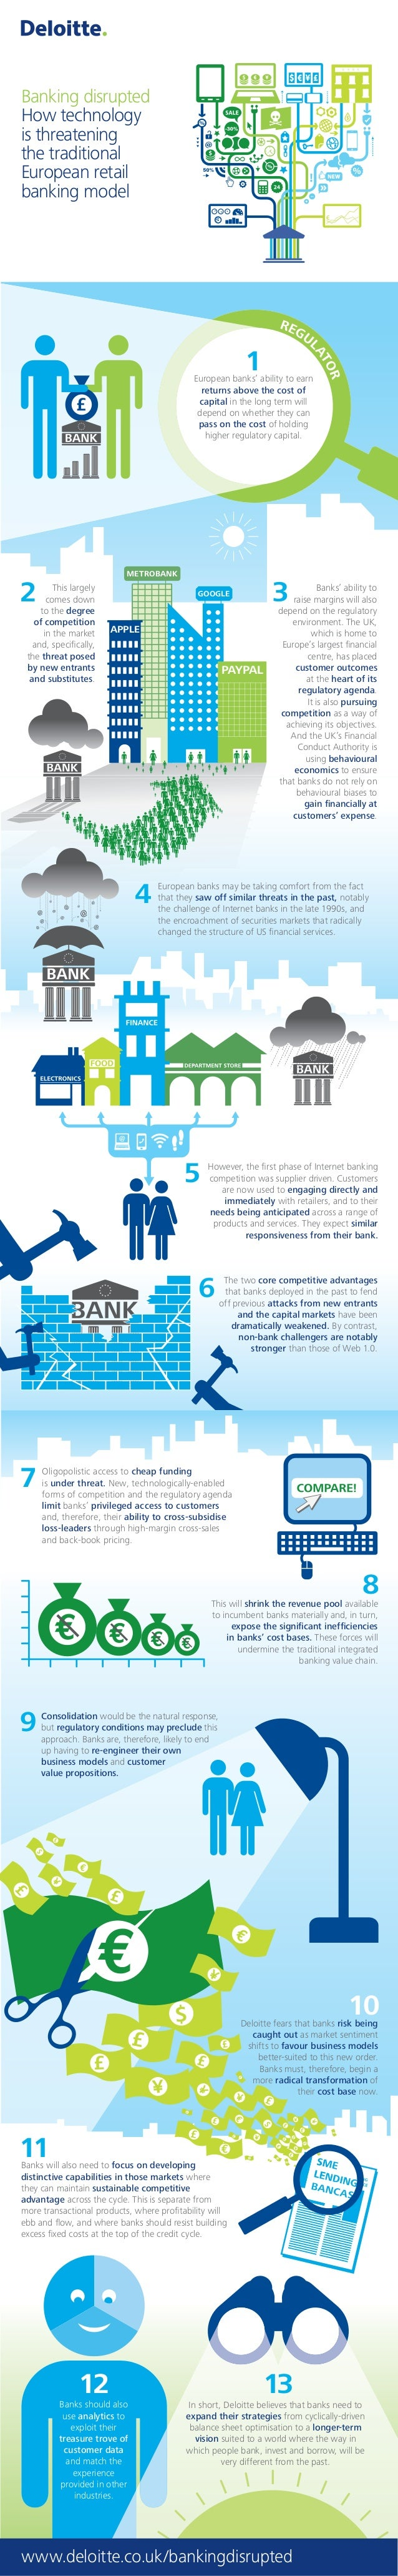 impact of technology on retail banking